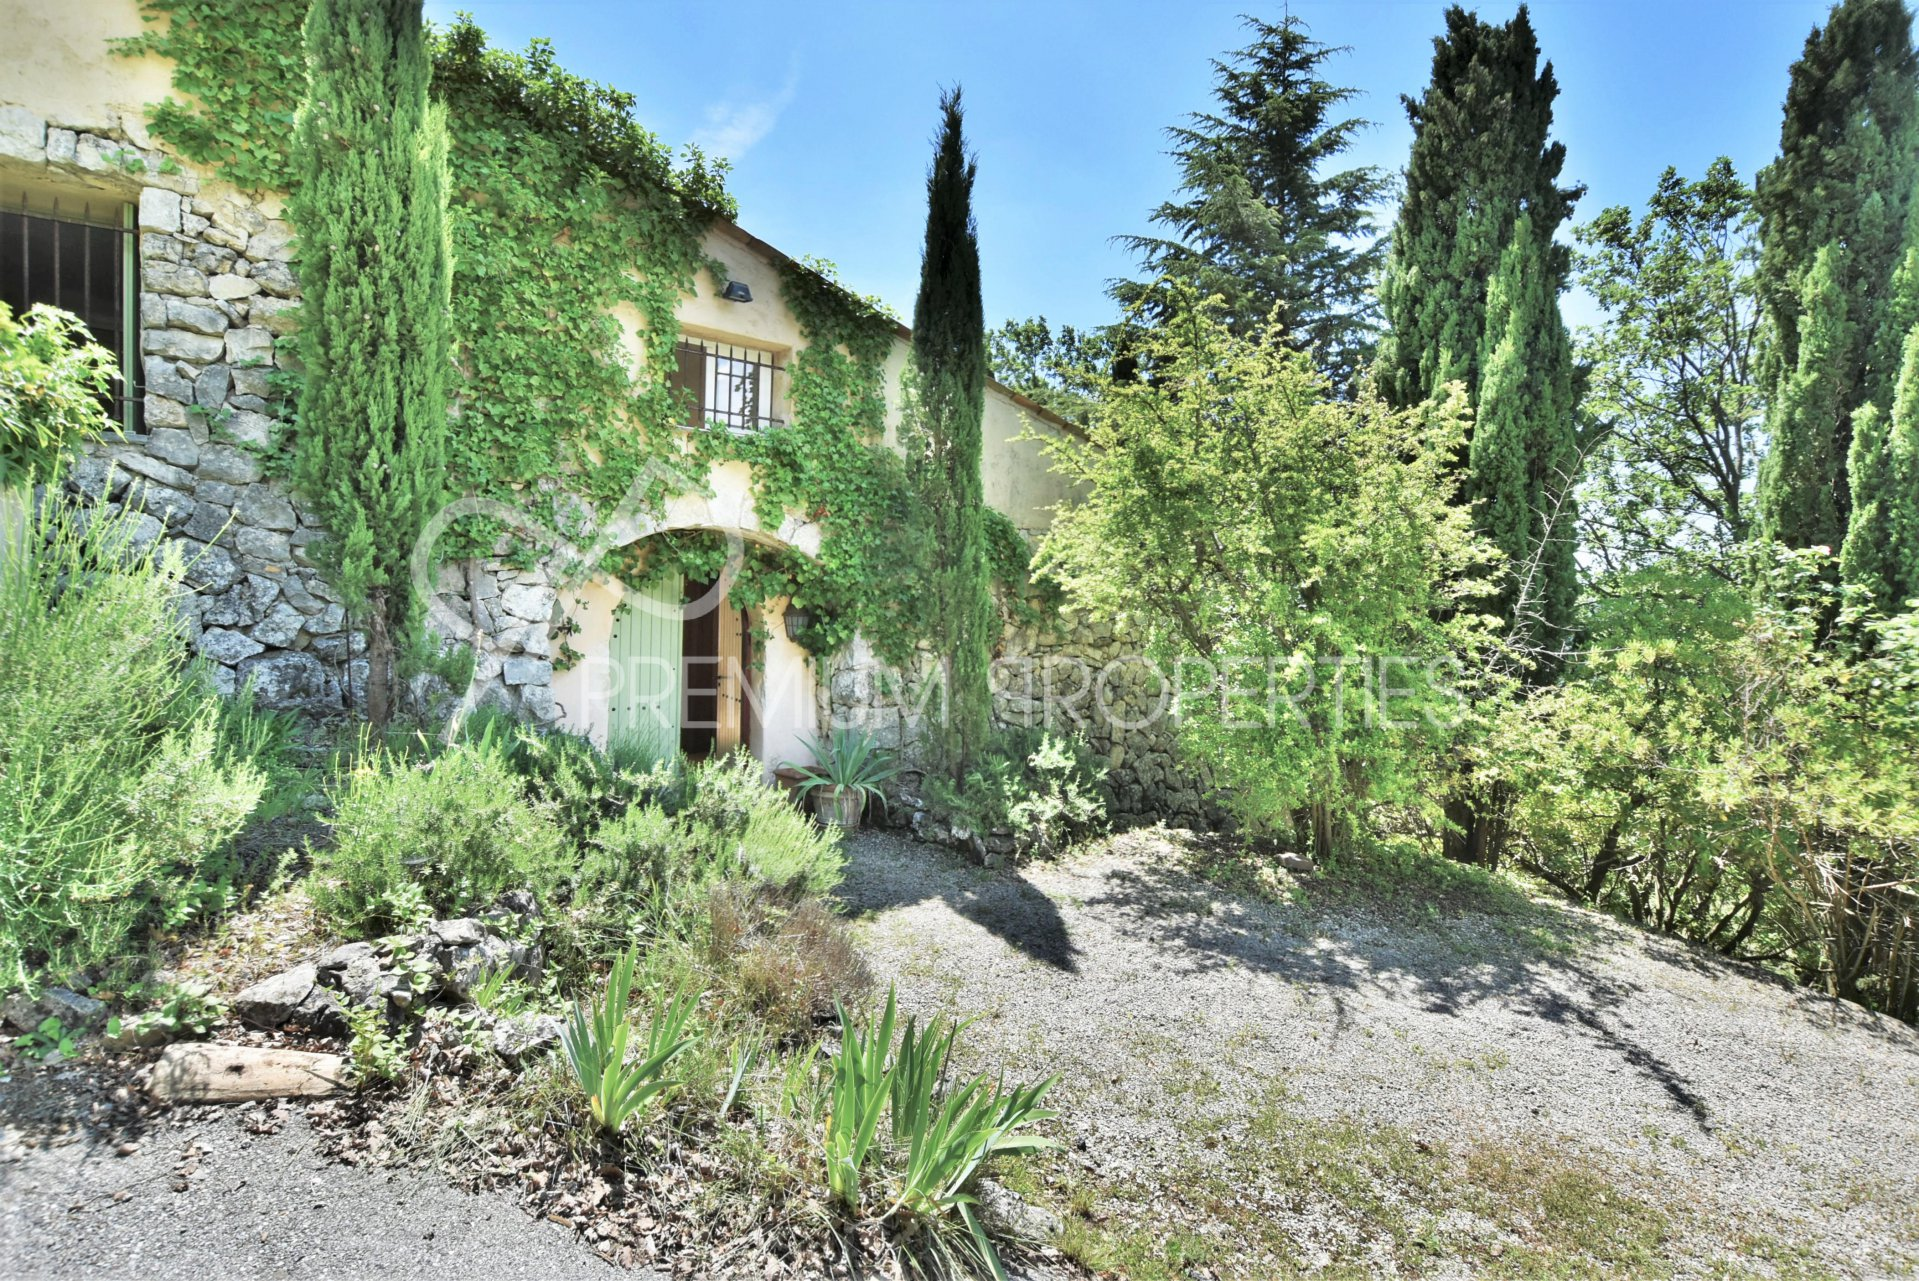 CHATEAUNEUF - GENUINE BERGERIE TOTALLY RENOVATED